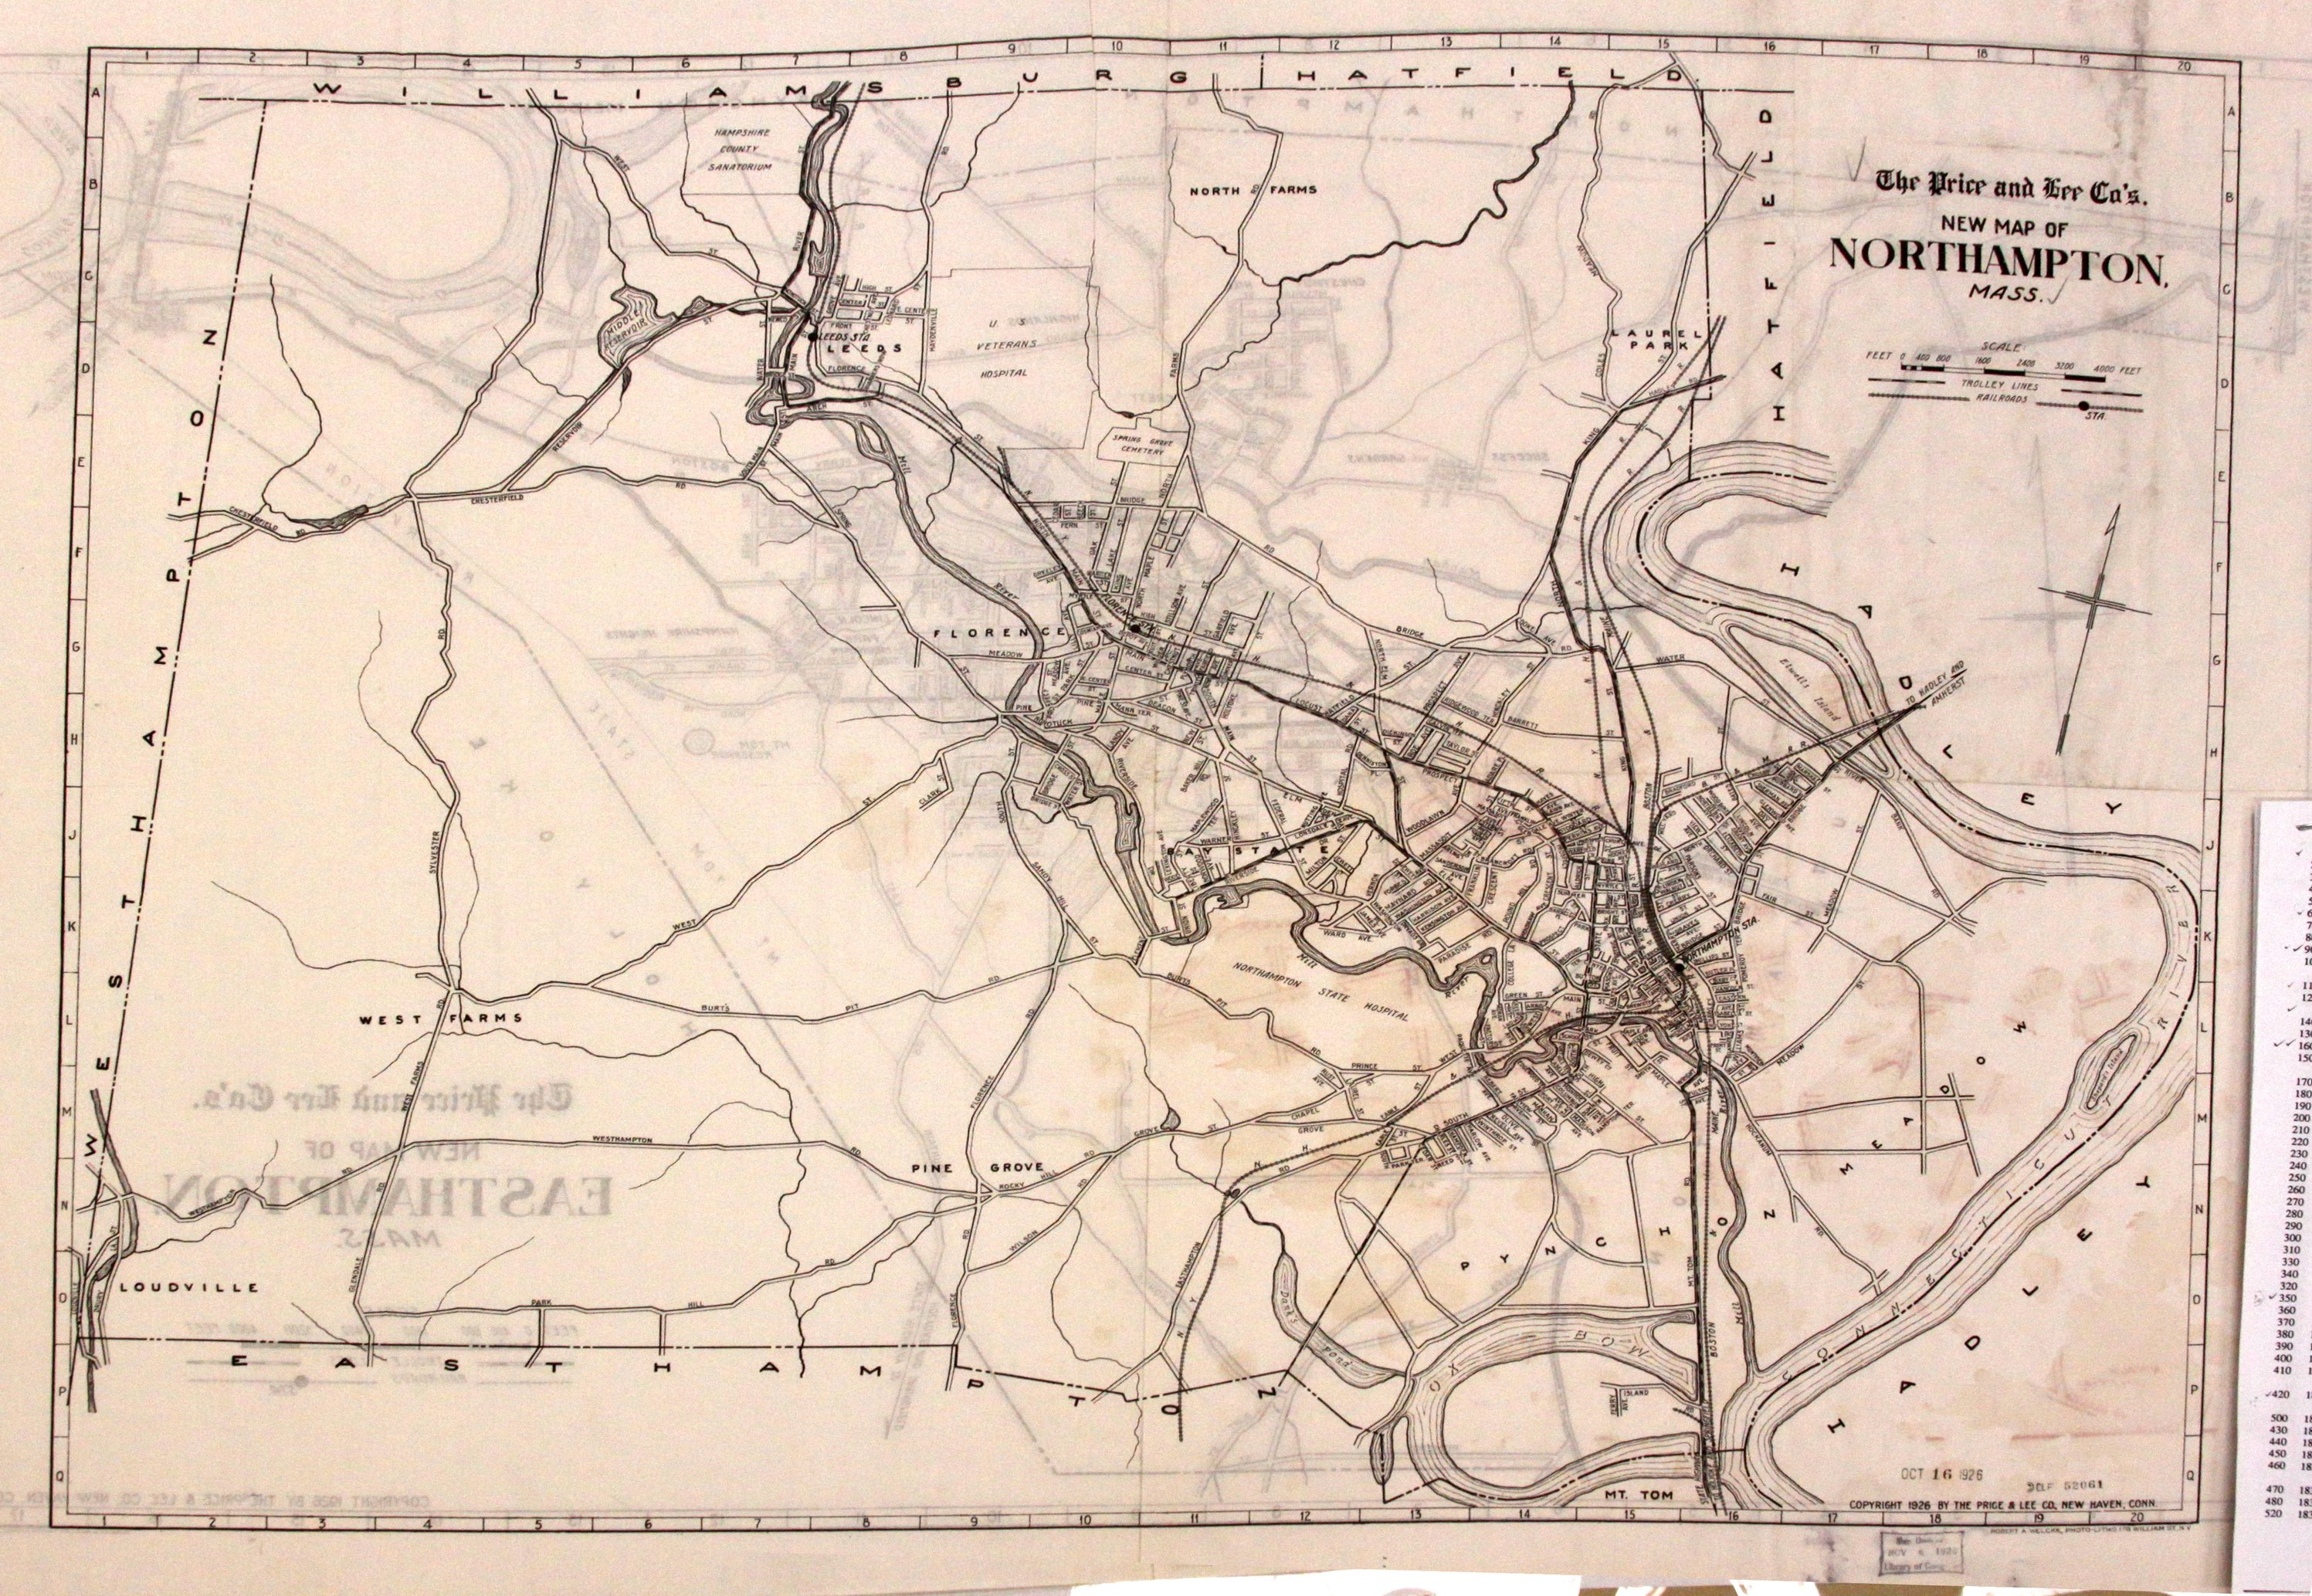 Old Northampton Massachusetts Maps from Library of Comgress